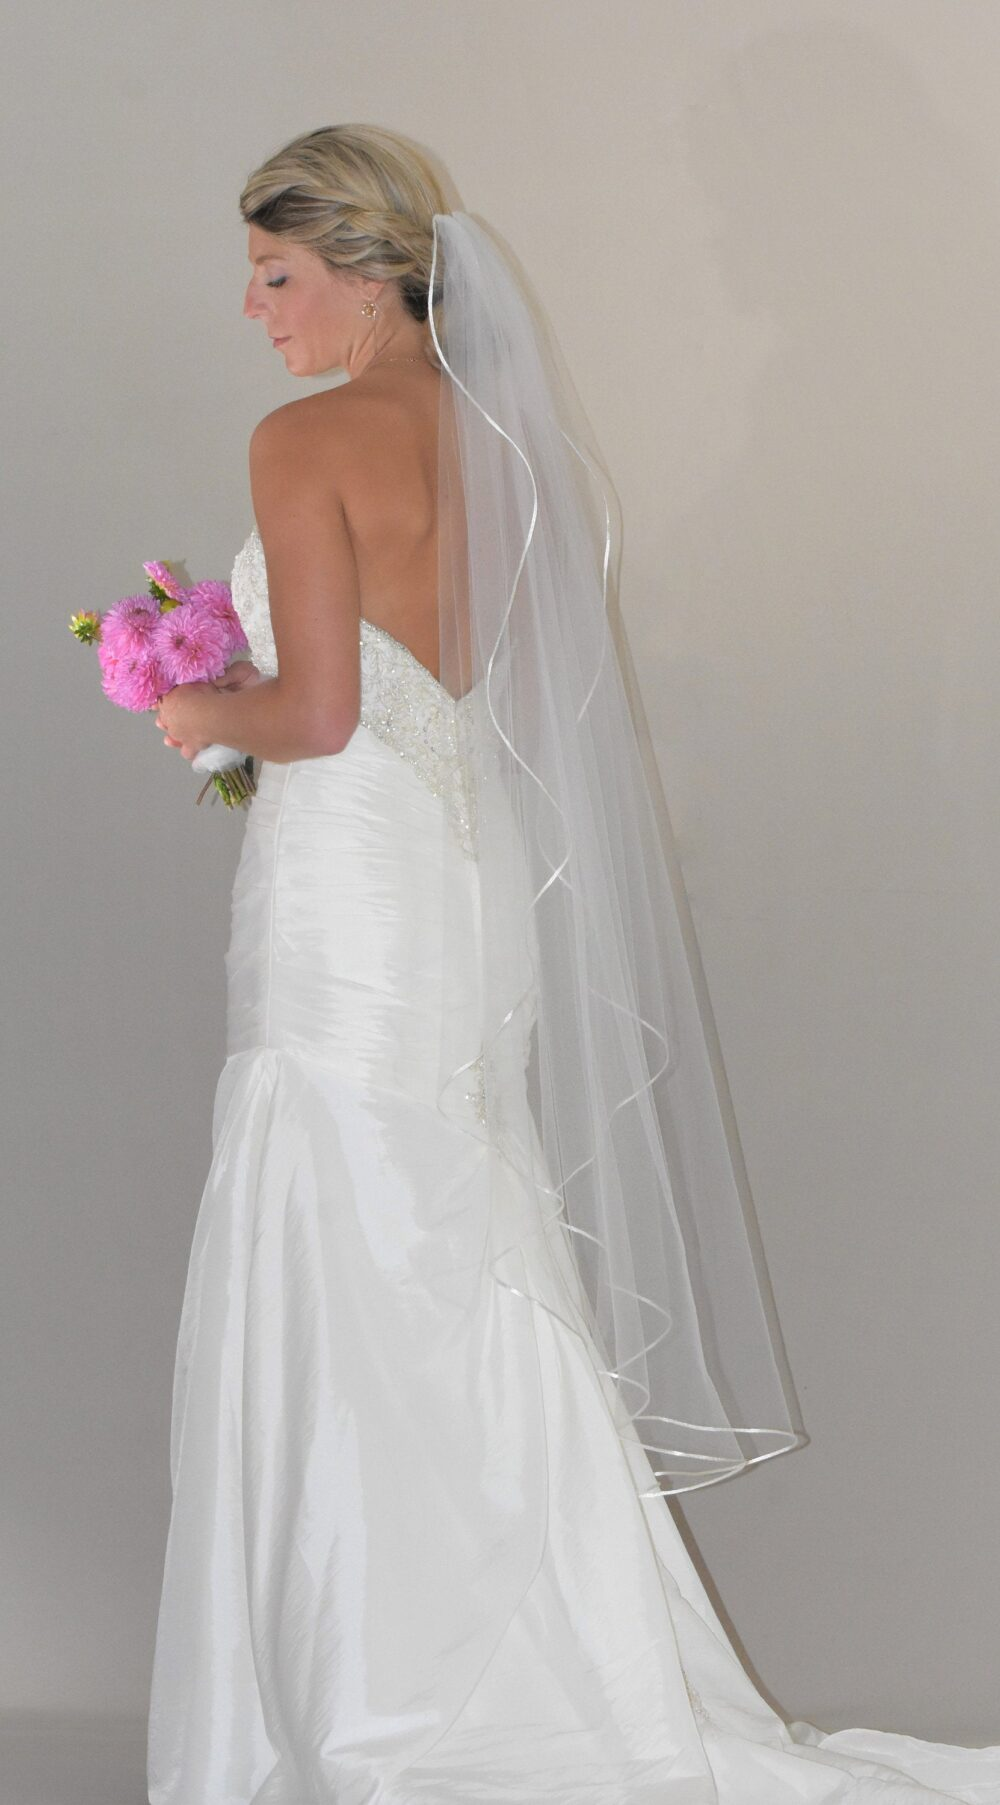 Angel Cut Knee Length Veil | Waterfall Satin Trim Mid Cord Edge Wedding Bridal